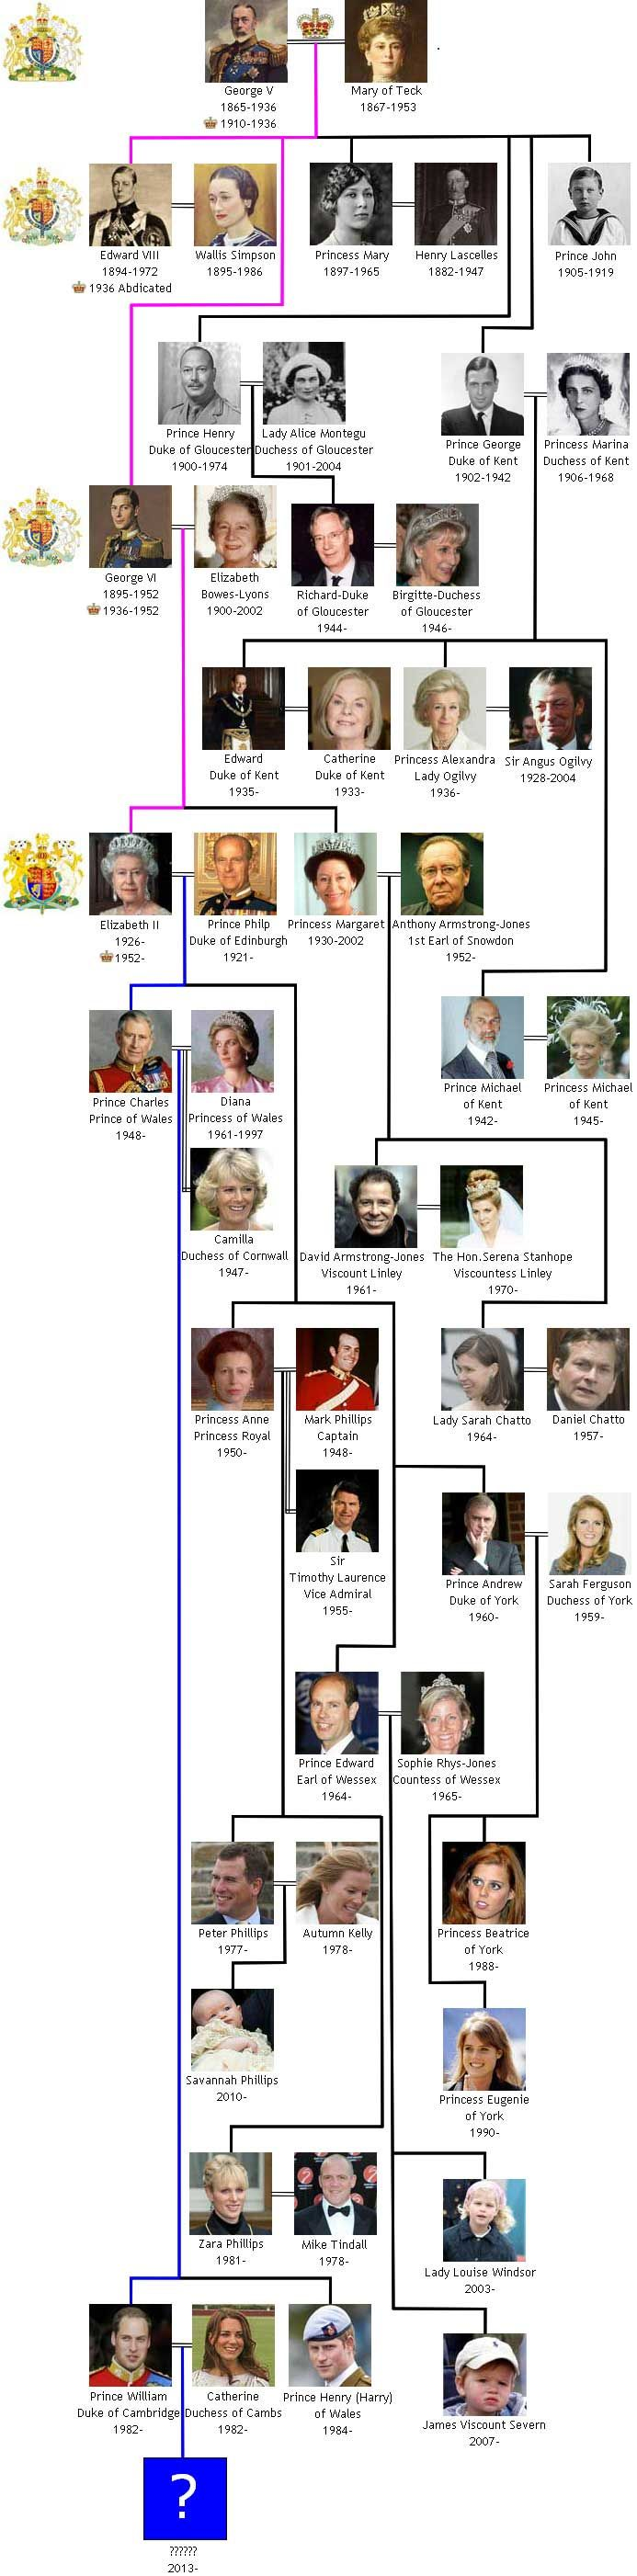 best ideas about british royal family tree royal royal house of windsor british royal family tree